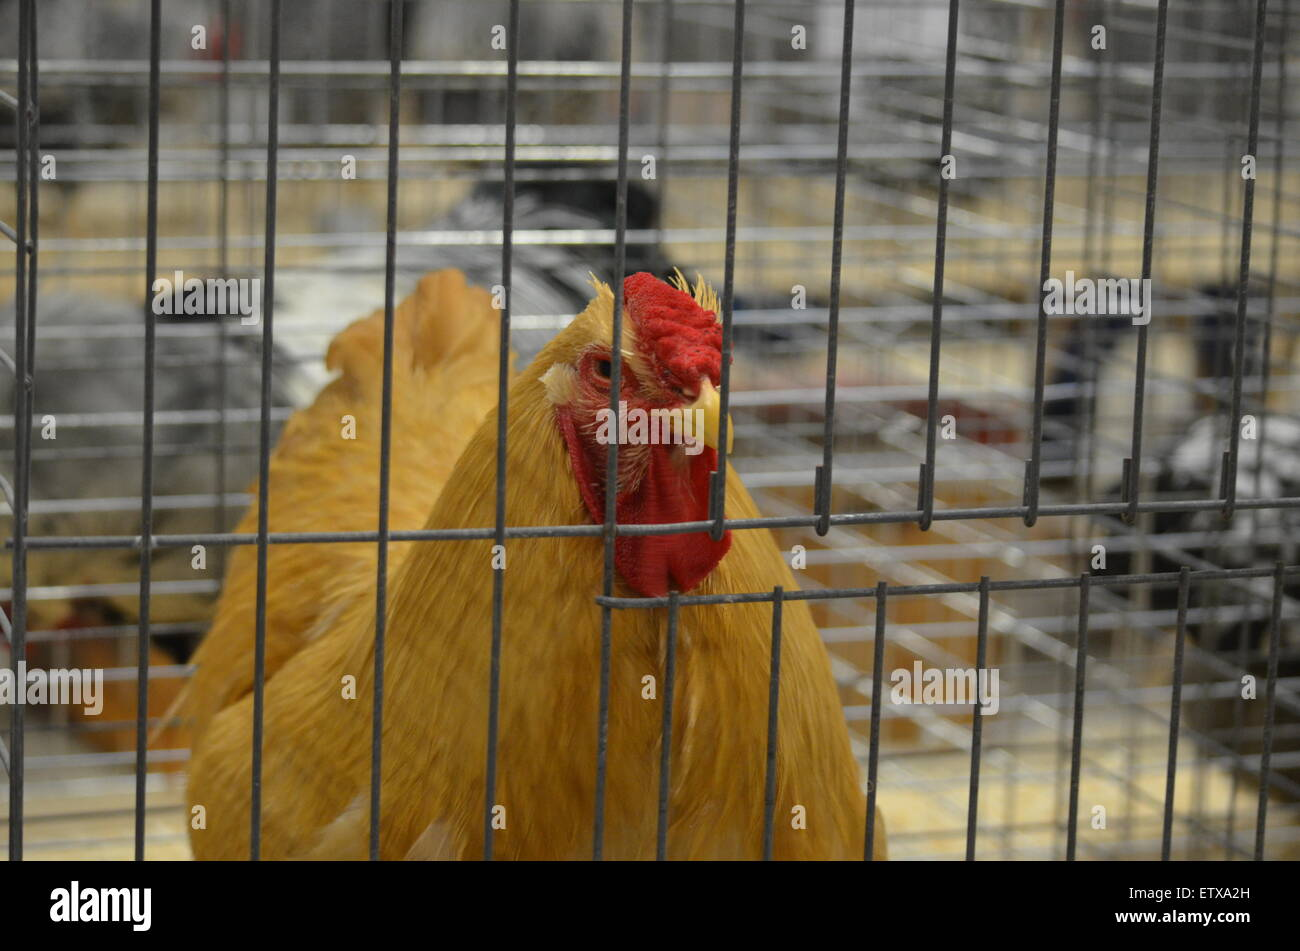 Chicken Show Stock Photos & Chicken Show Stock Images - Alamy